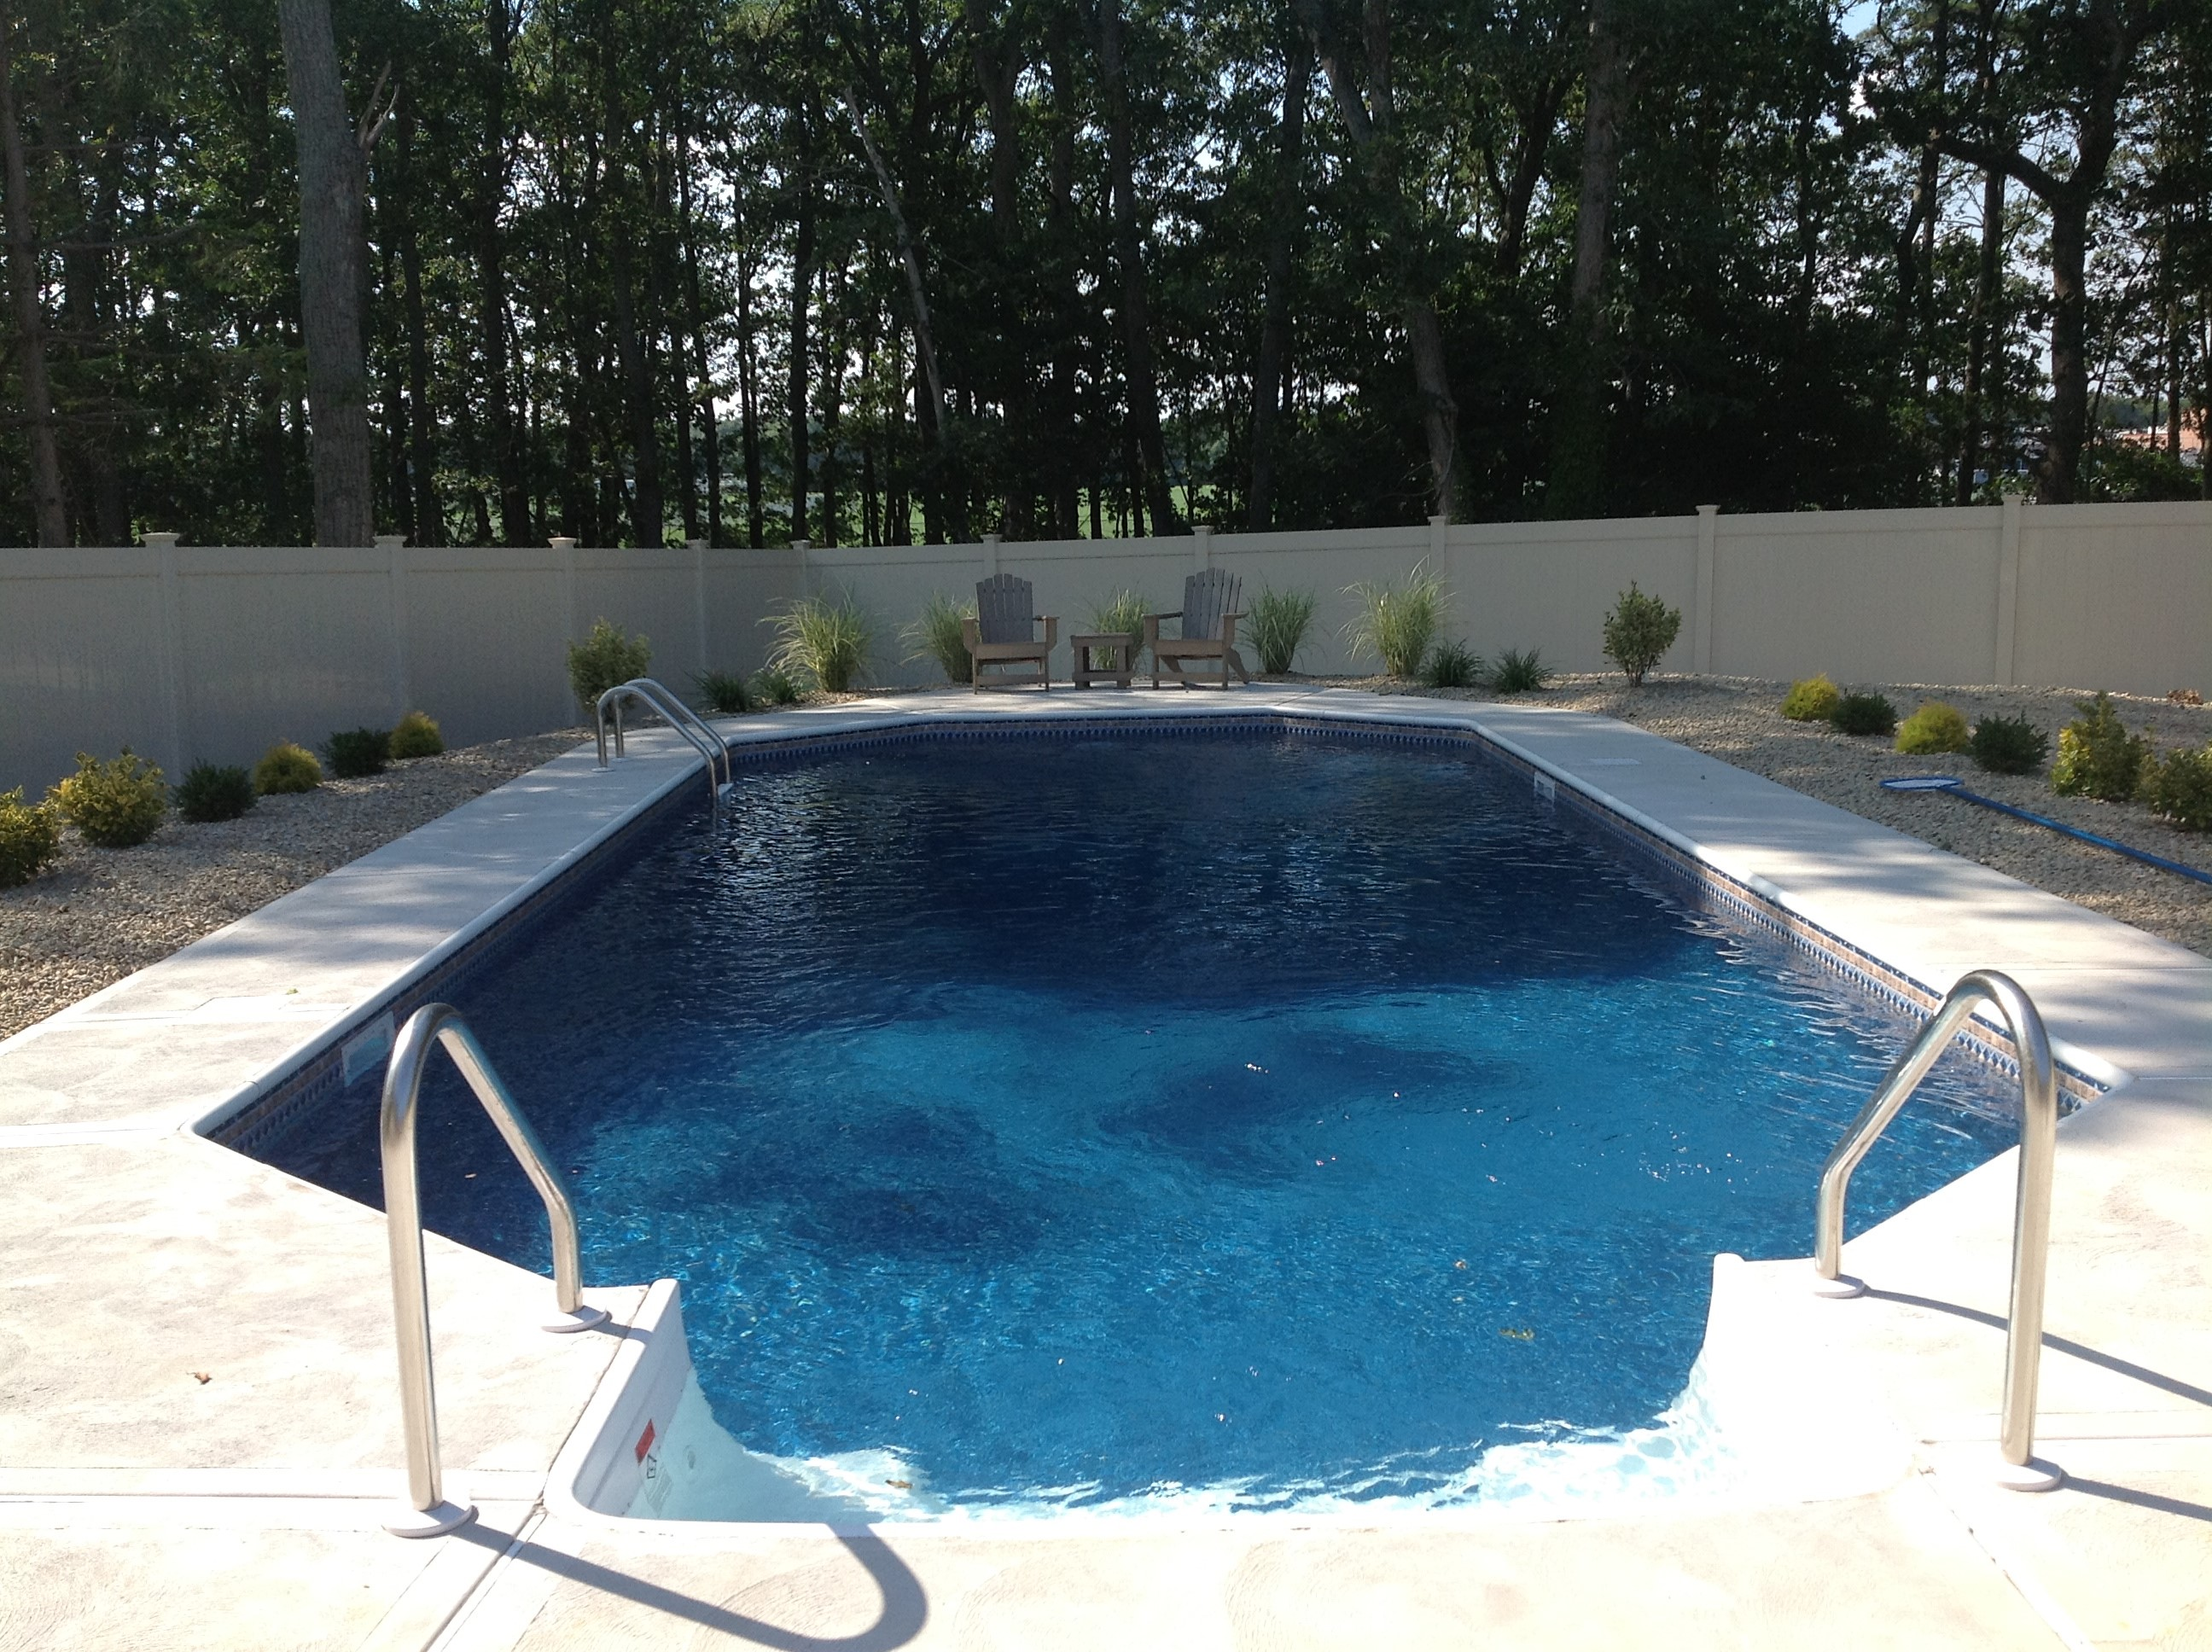 Inground Pools Specials: Toms River, NJ: Pool Designs by Poolside